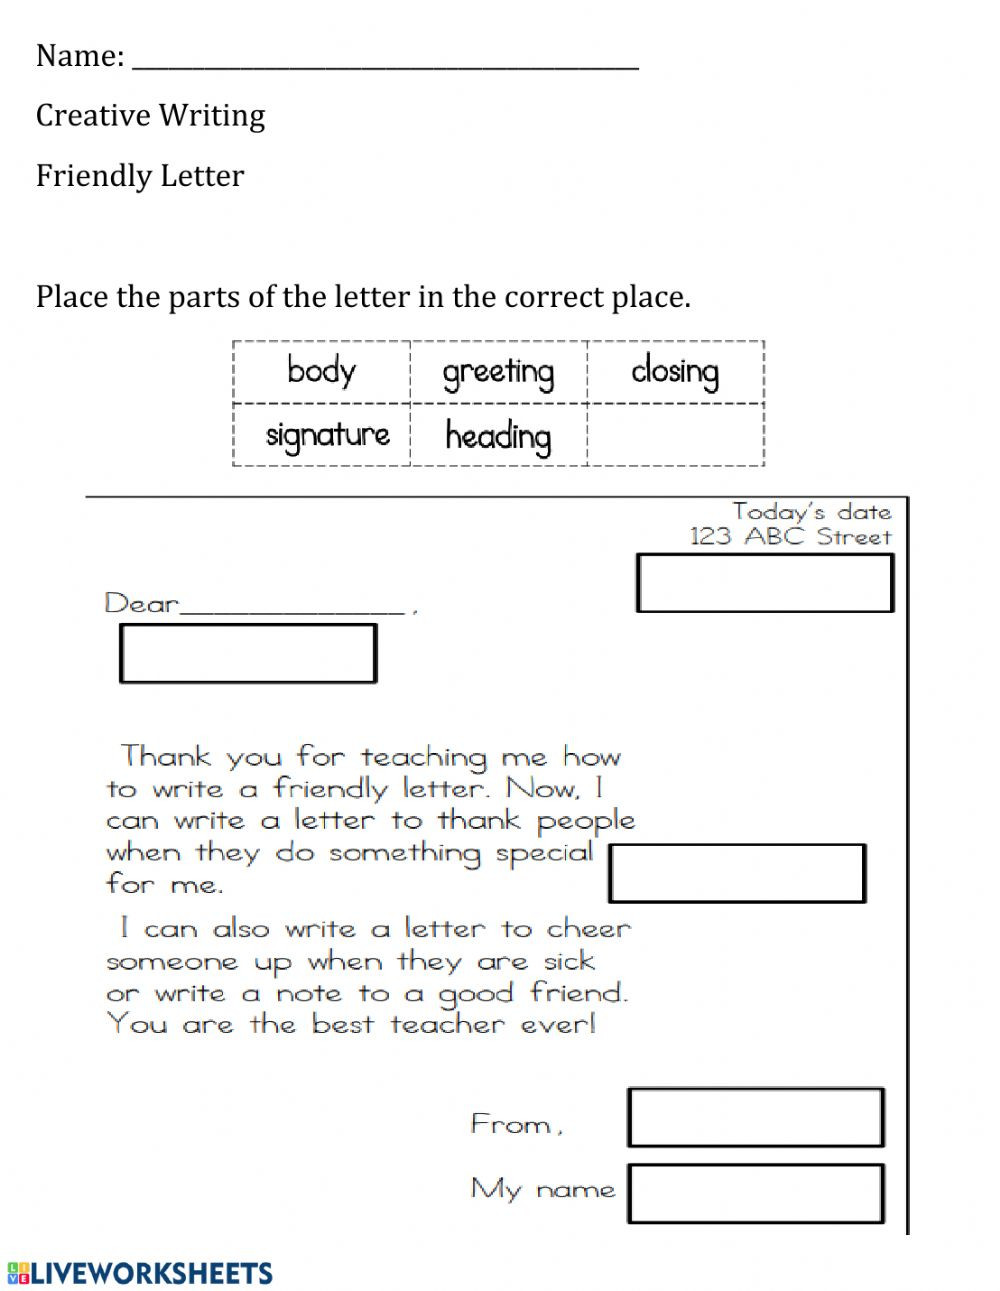 Friendly Letter Writing Worksheets Parts Of the Friendly Letter Interactive Worksheet